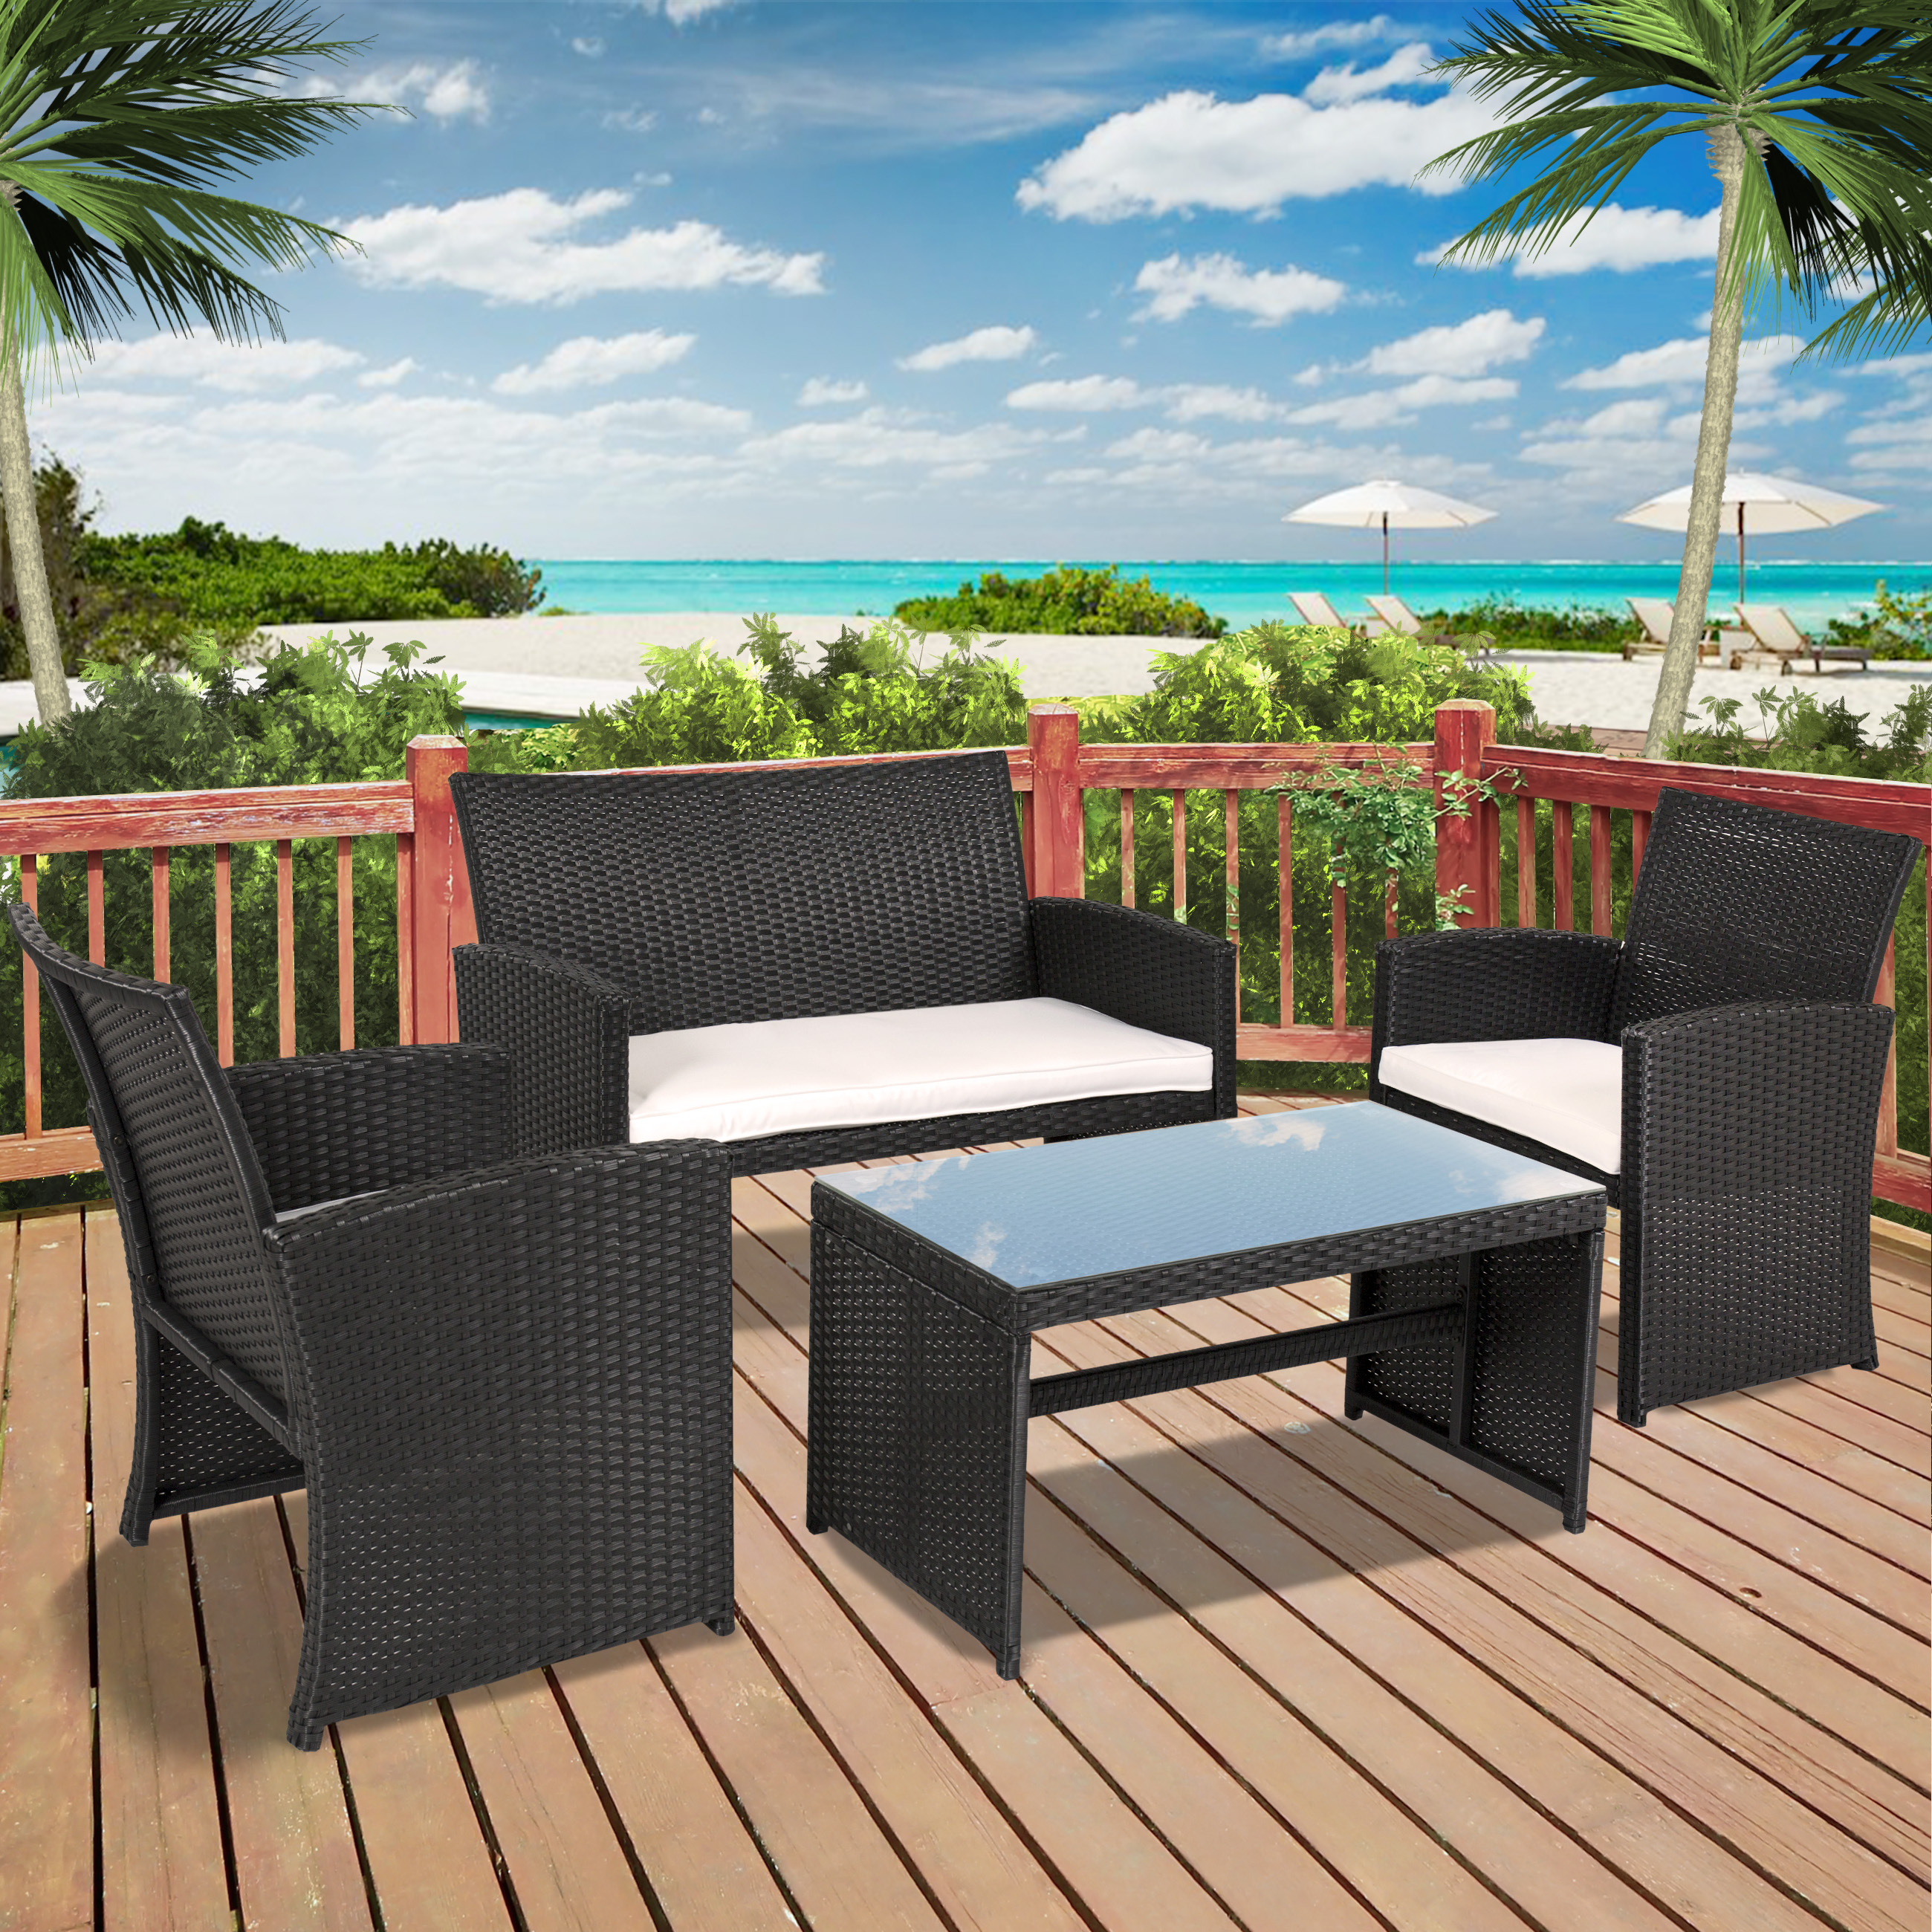 BCP 4-Piece Wicker Patio Furniture Set w/ Tempered Glass, Sofas, Table, Seats